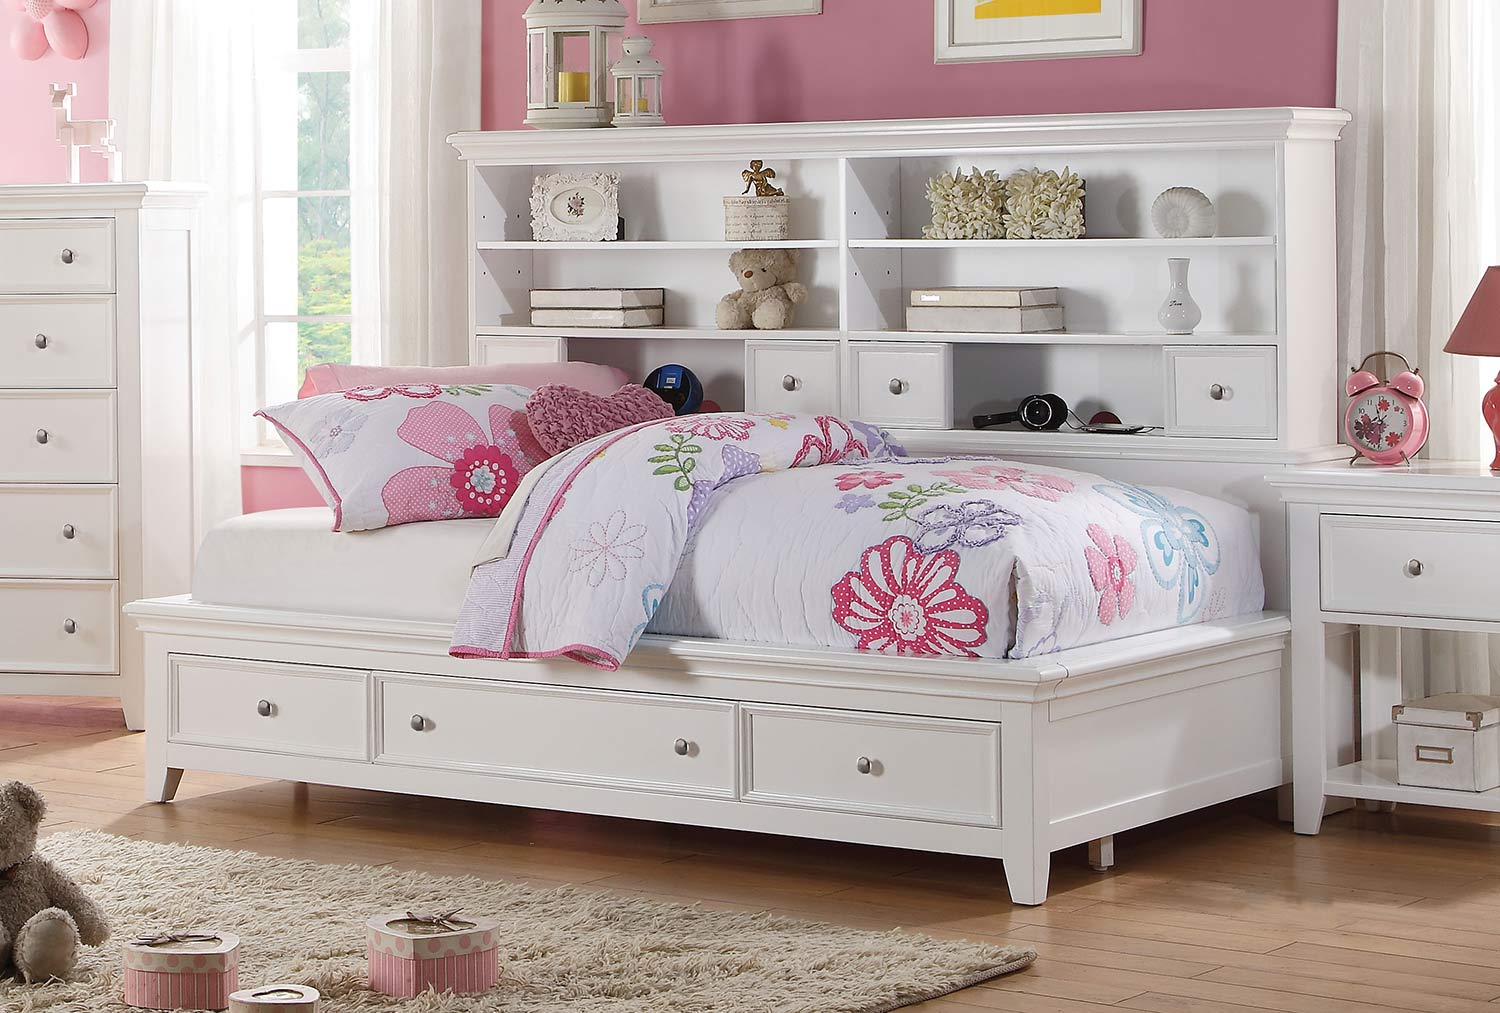 Acme Lacey Daybed with Storage - White